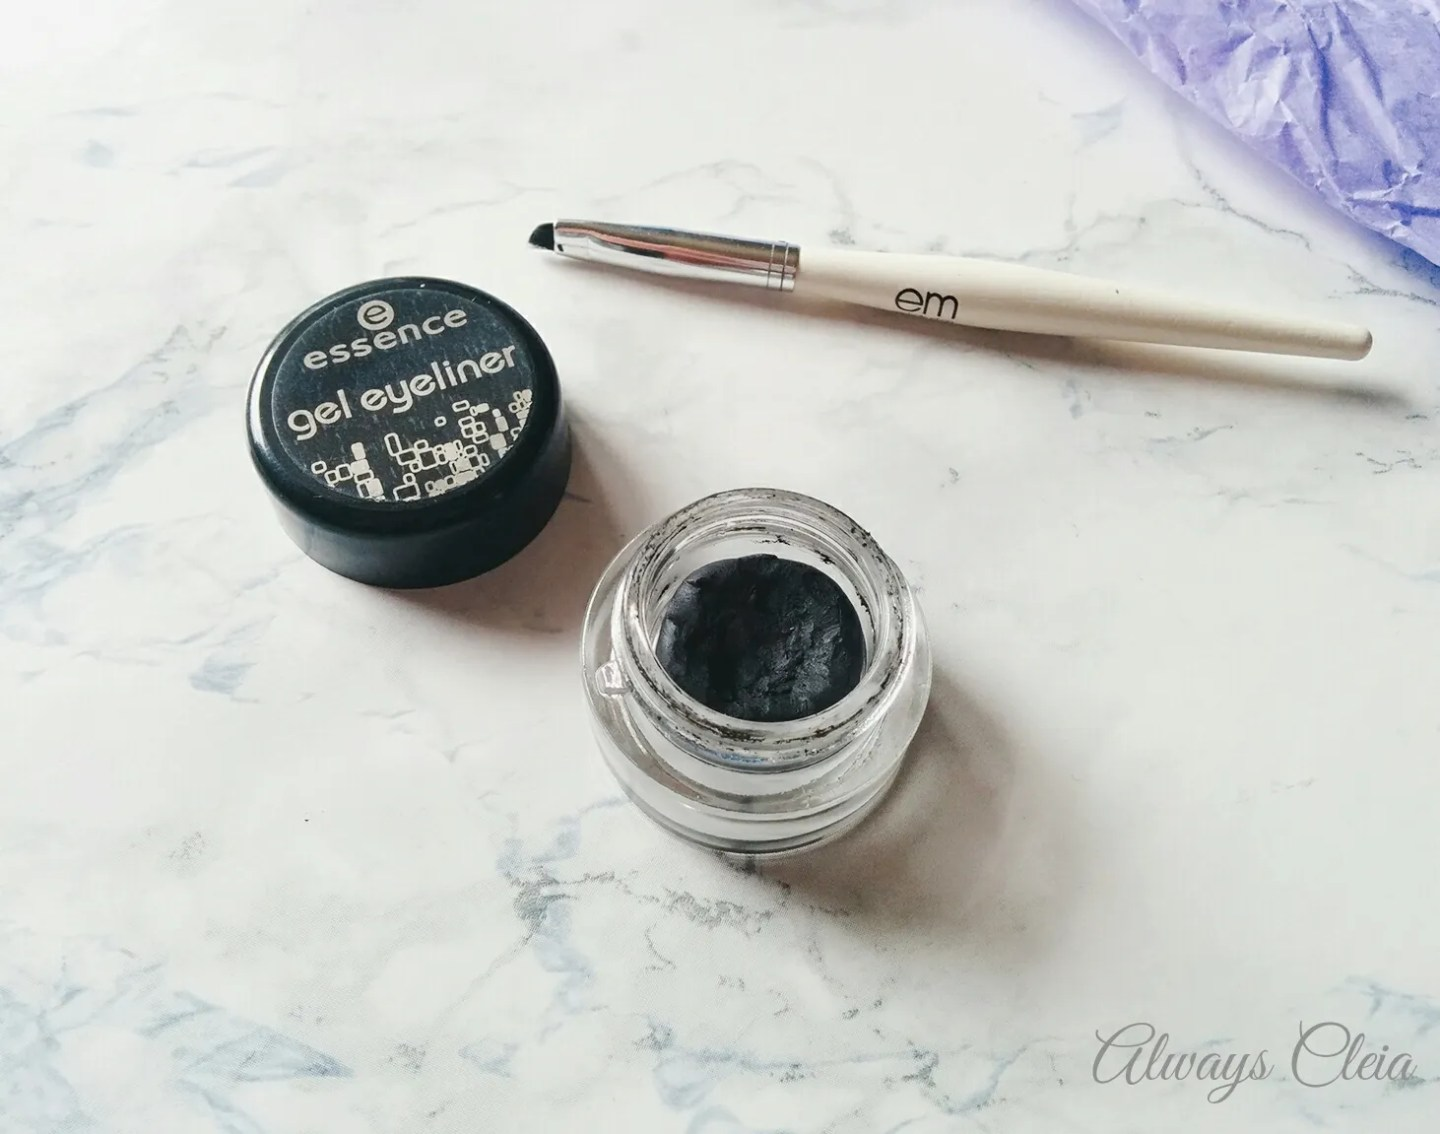 Essence Gel Eyeliner Pot Review